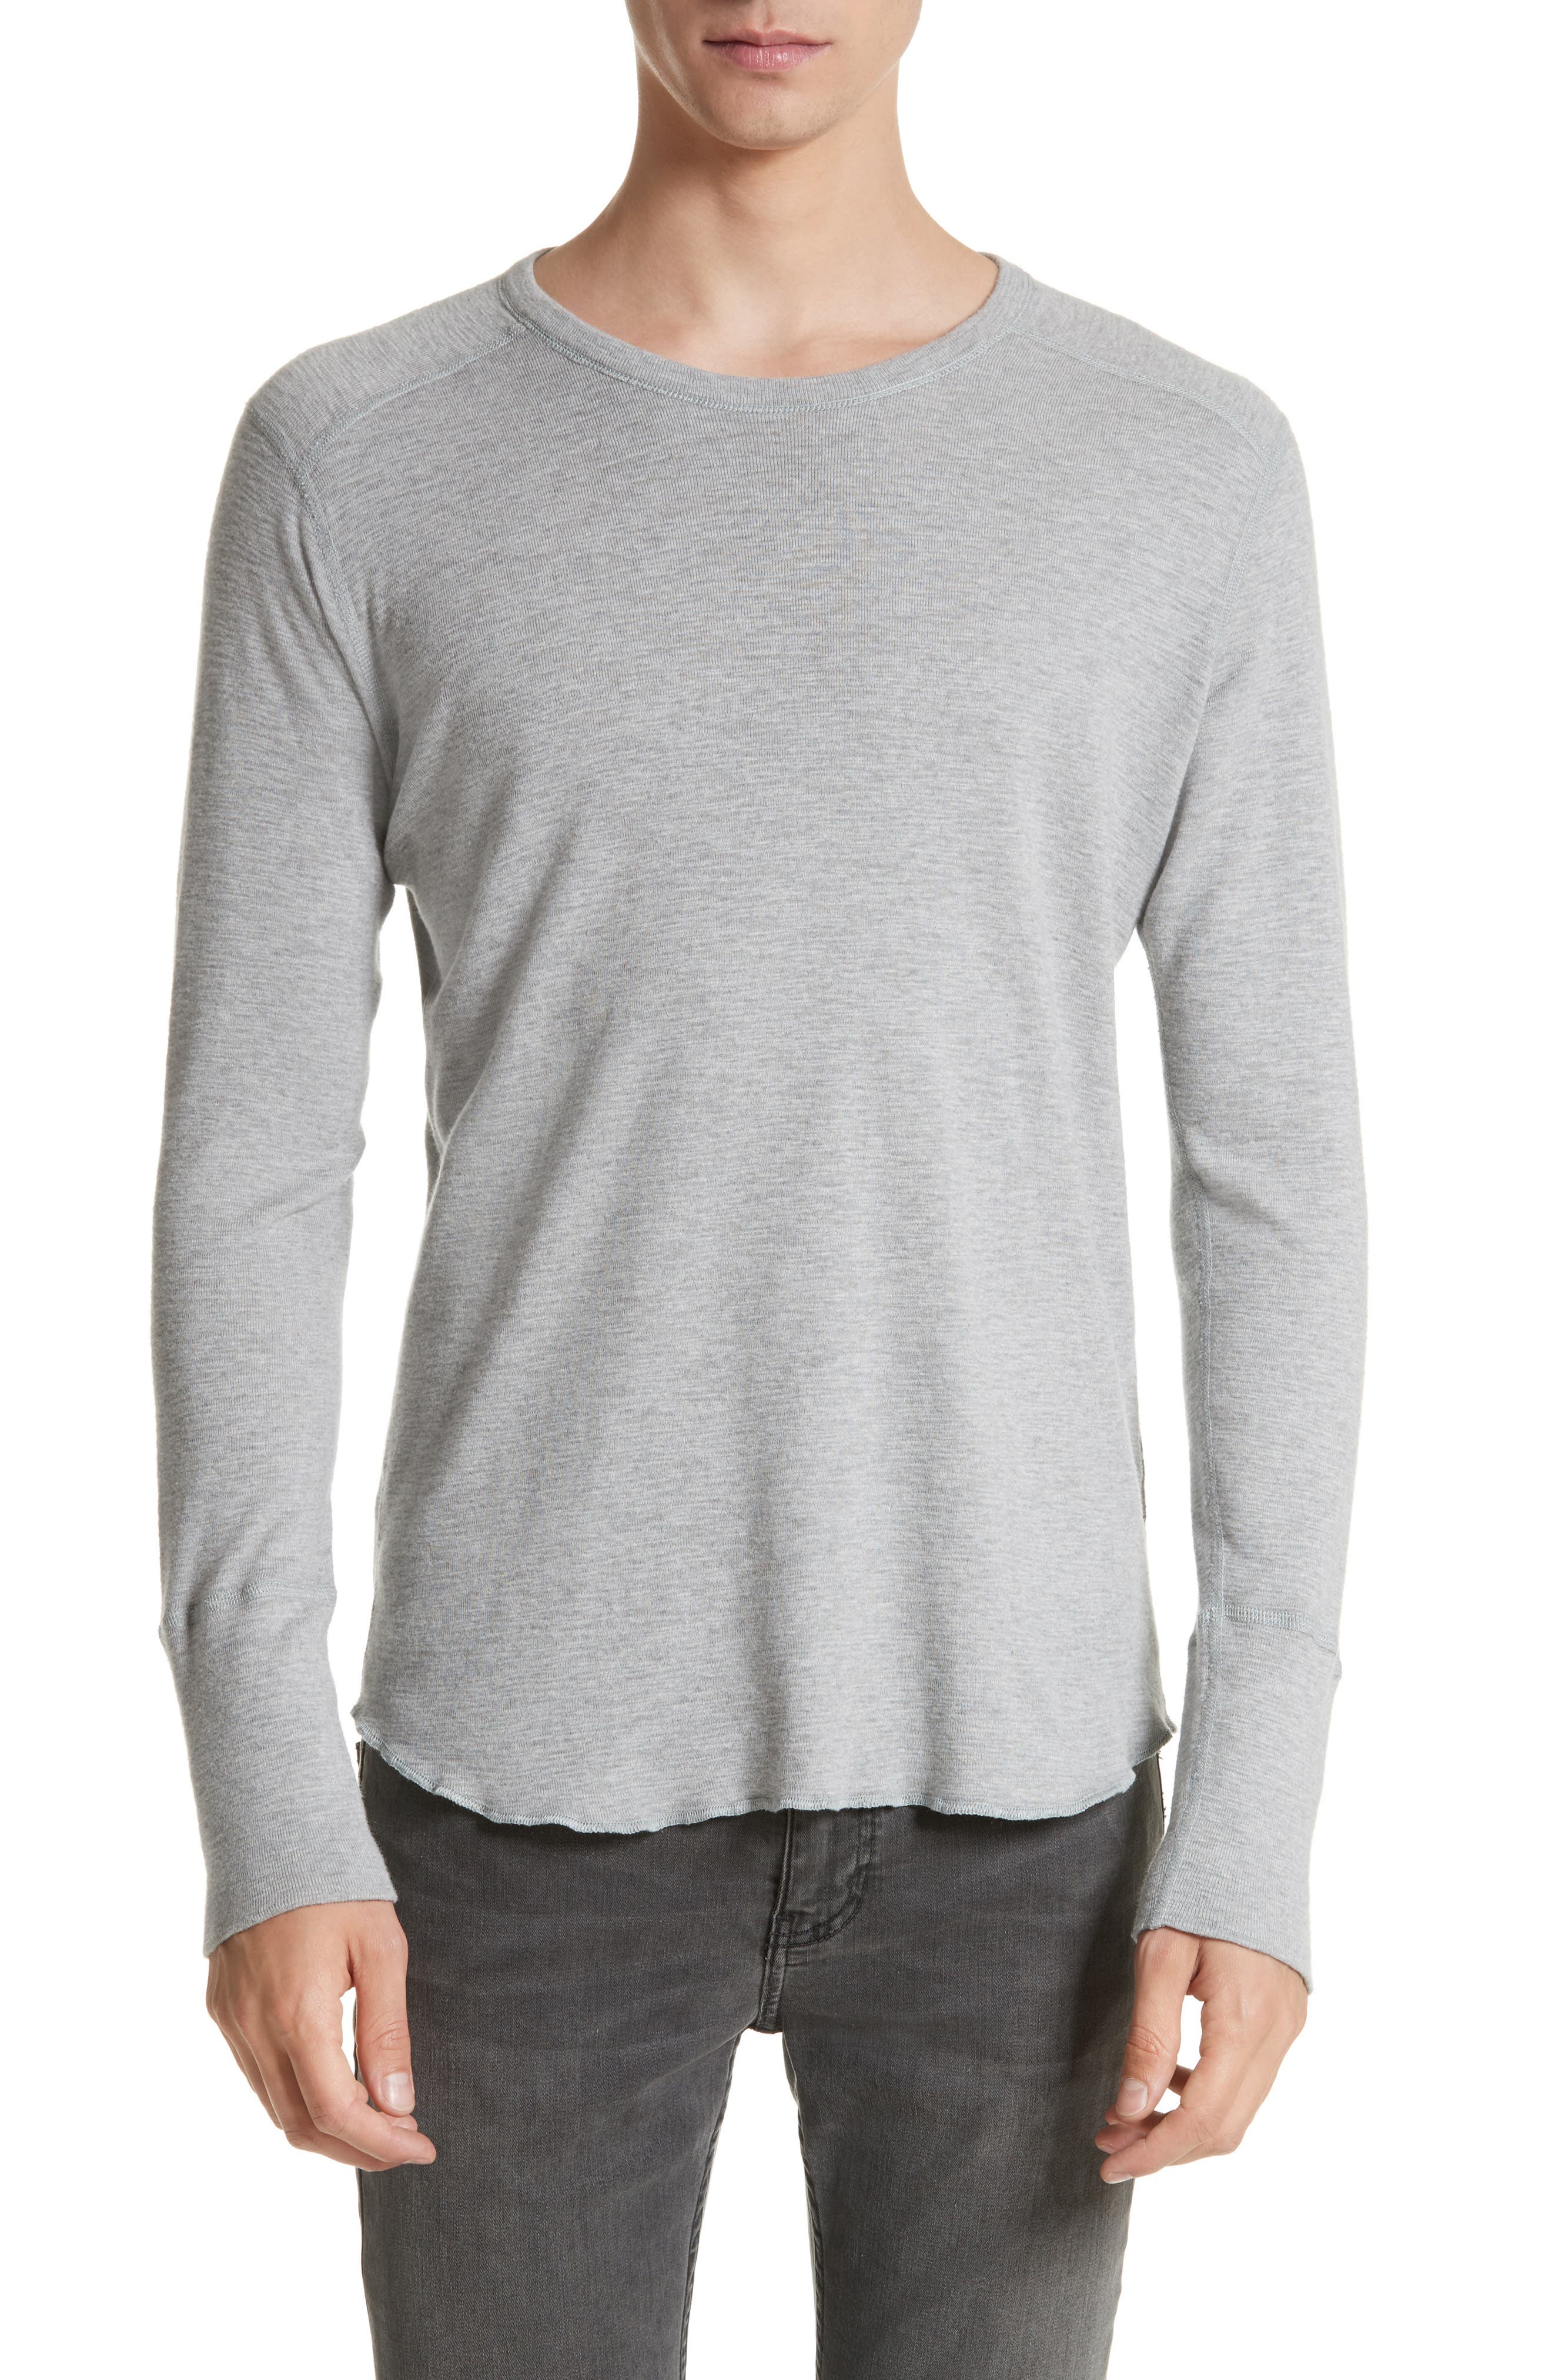 WINGS + HORNS Slub Crewneck Sweater in Heather Grey